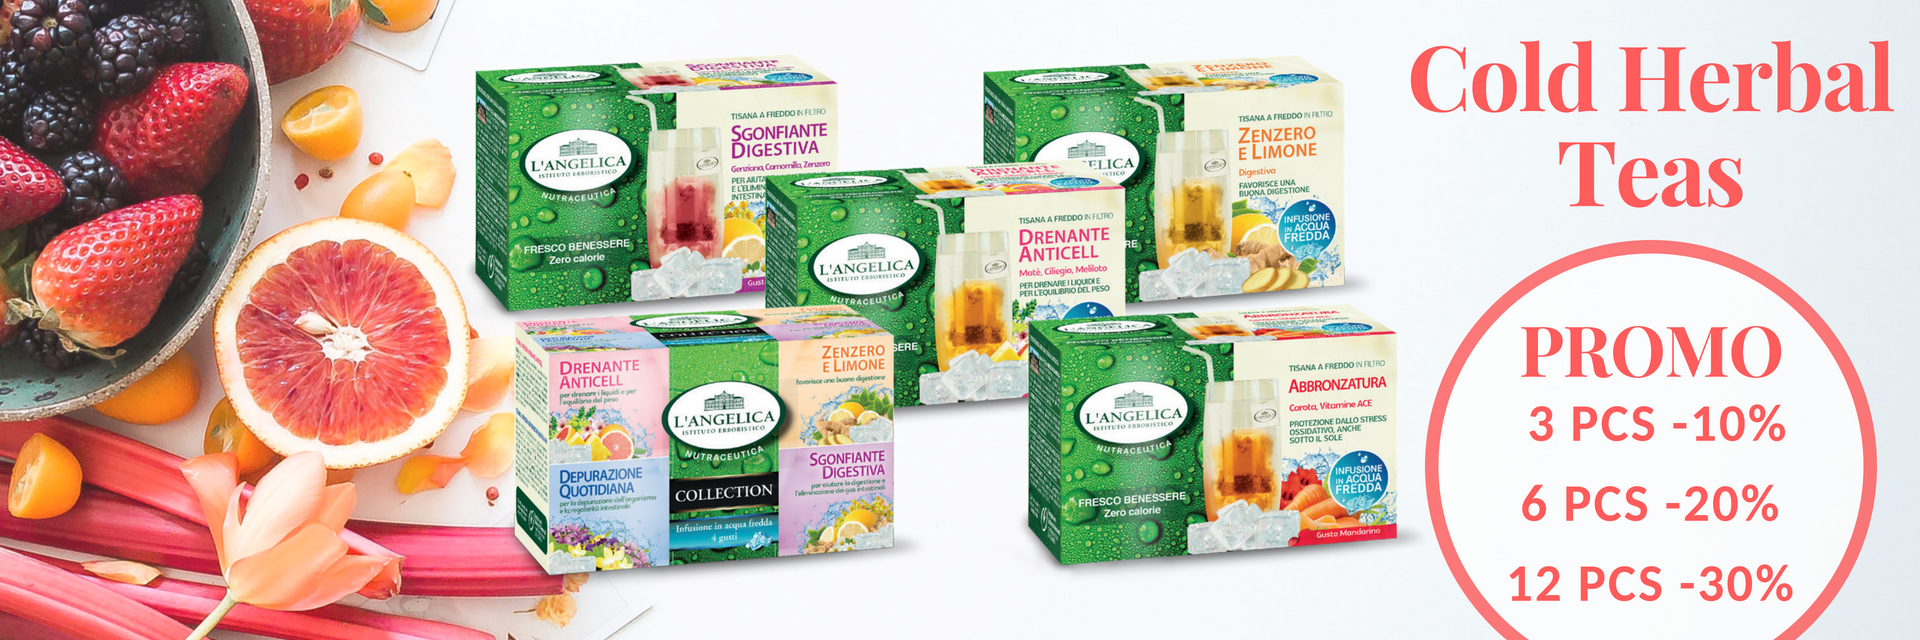 cold herbal teas